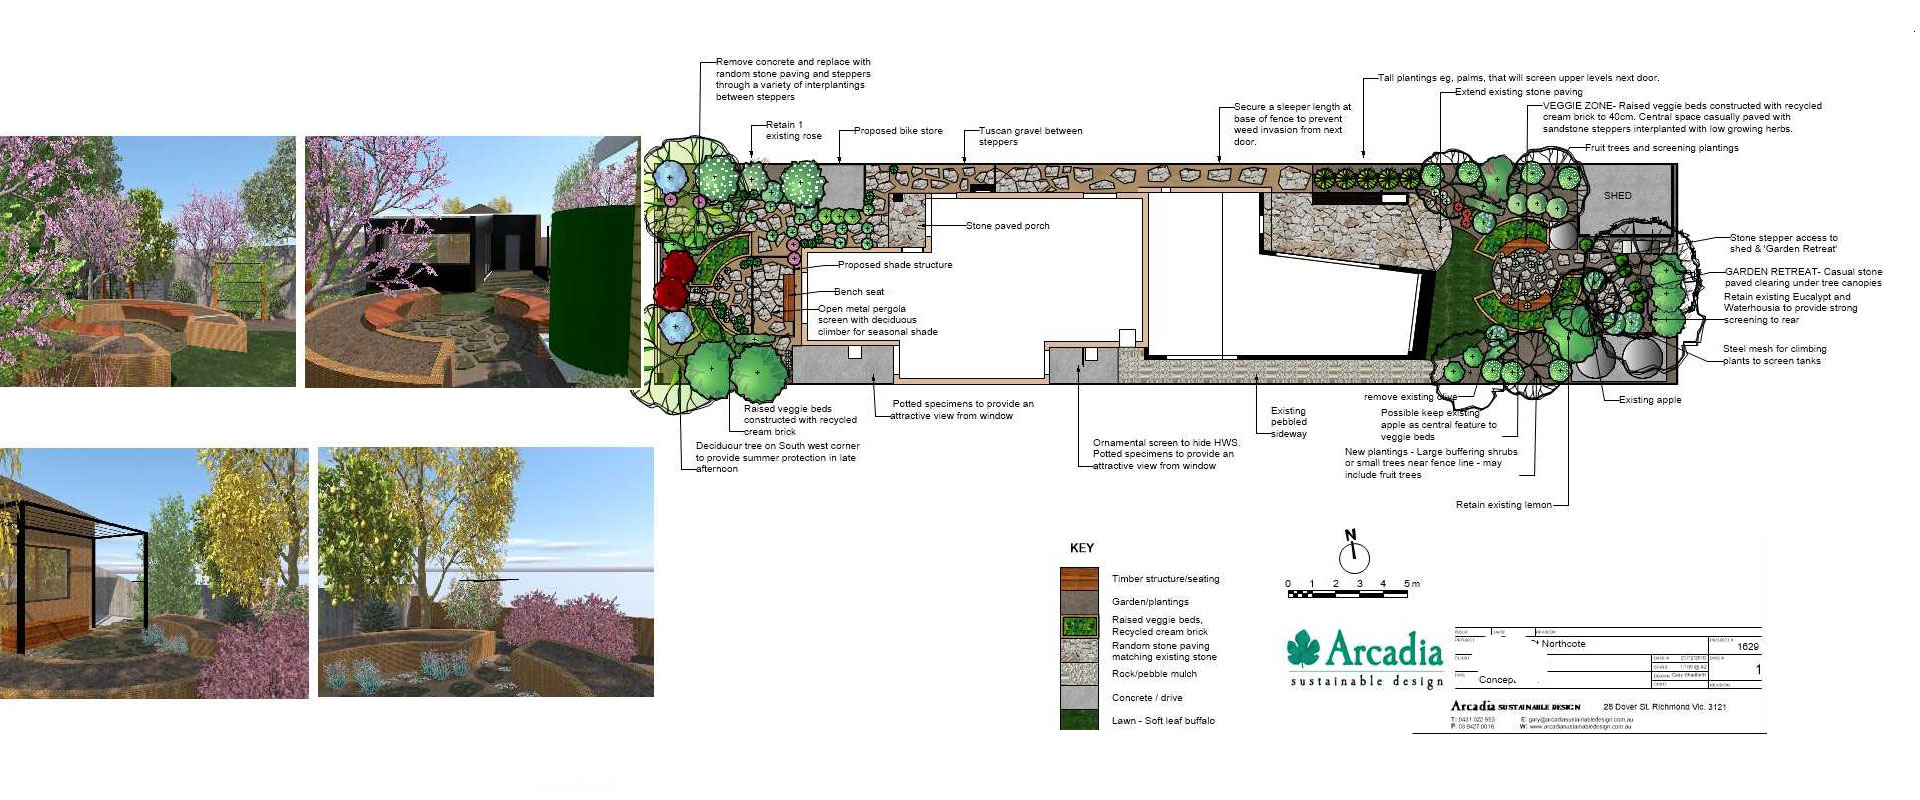 Landscape design services arcadia sustainable design for Landscape design services